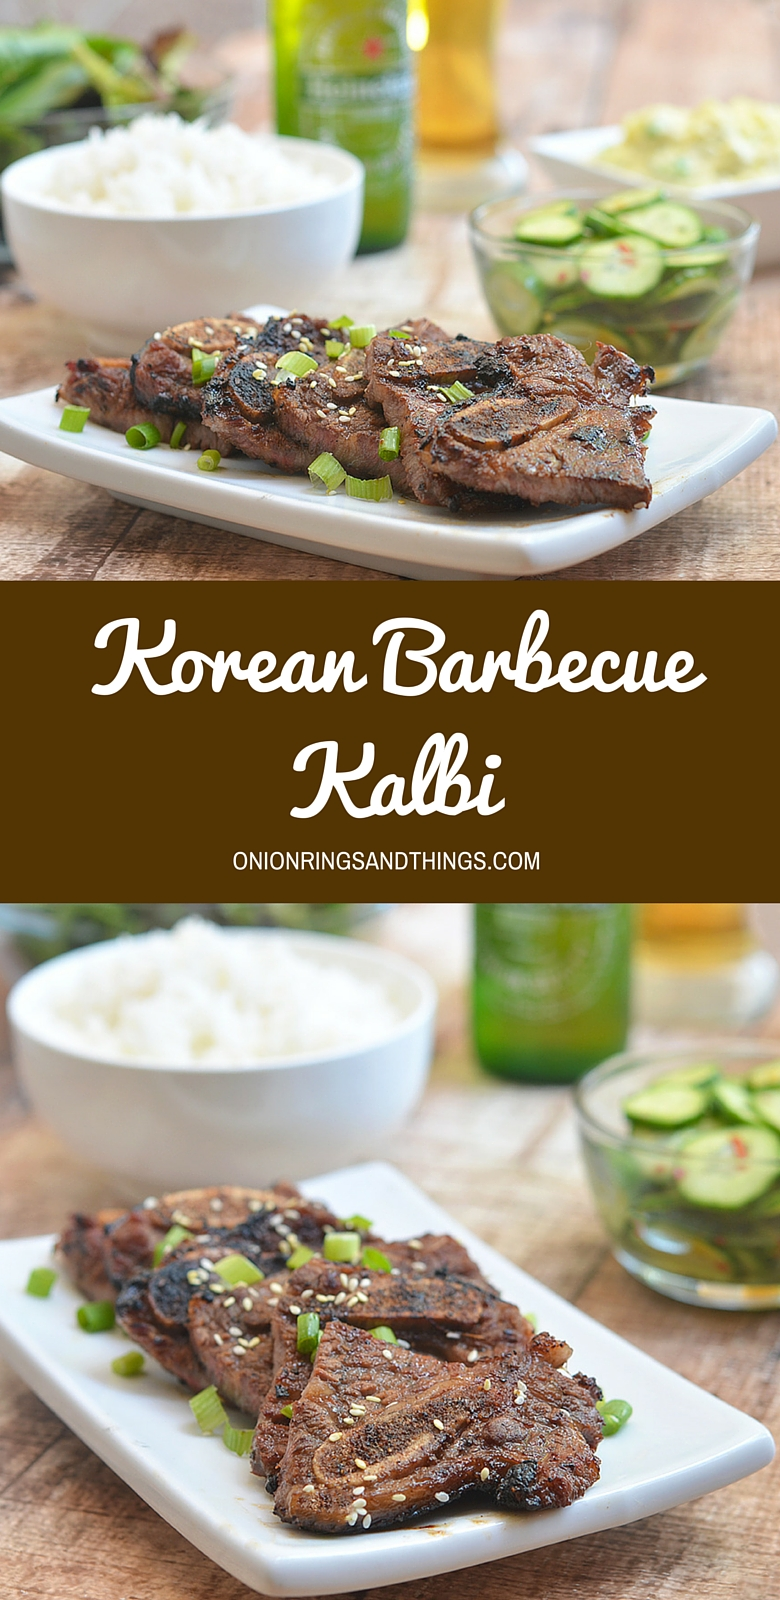 Msg 4 21+ #ad Moist and flavorful, these Korean BBQ Kalbi are so easy to make and grill up in no time.  They're so addicting, it will be hard to eat just one!